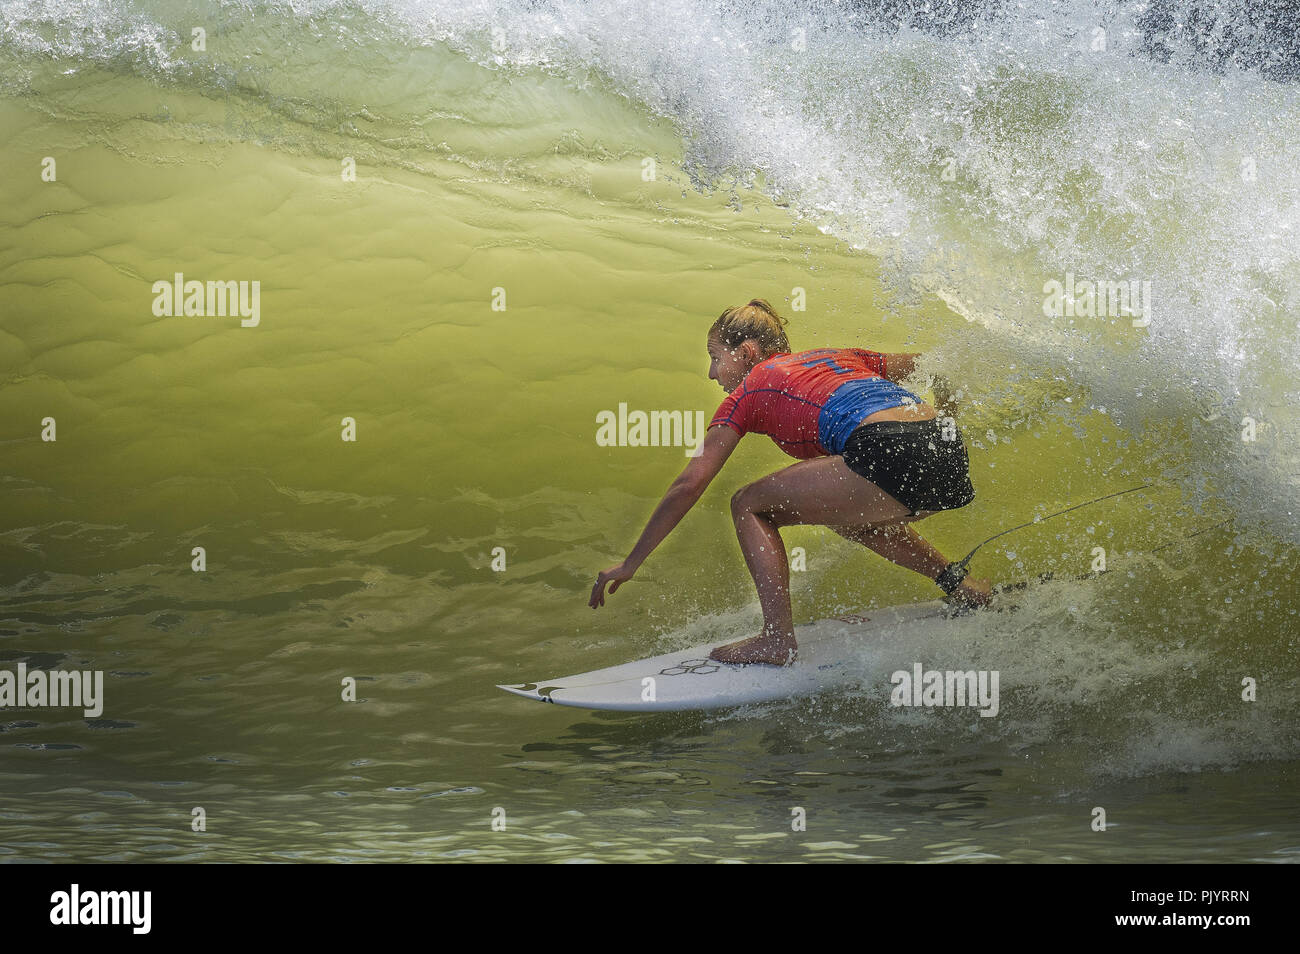 Lemoore, California, USA. 8th Sep, 2018. With combined heat total of 16.57 LAKEY PETERSON of California earned a third place finish at the inaugural World Surf League Surf Ranch Pro. Credit: Erick Madrid/ZUMA Wire/Alamy Live News - Stock Image